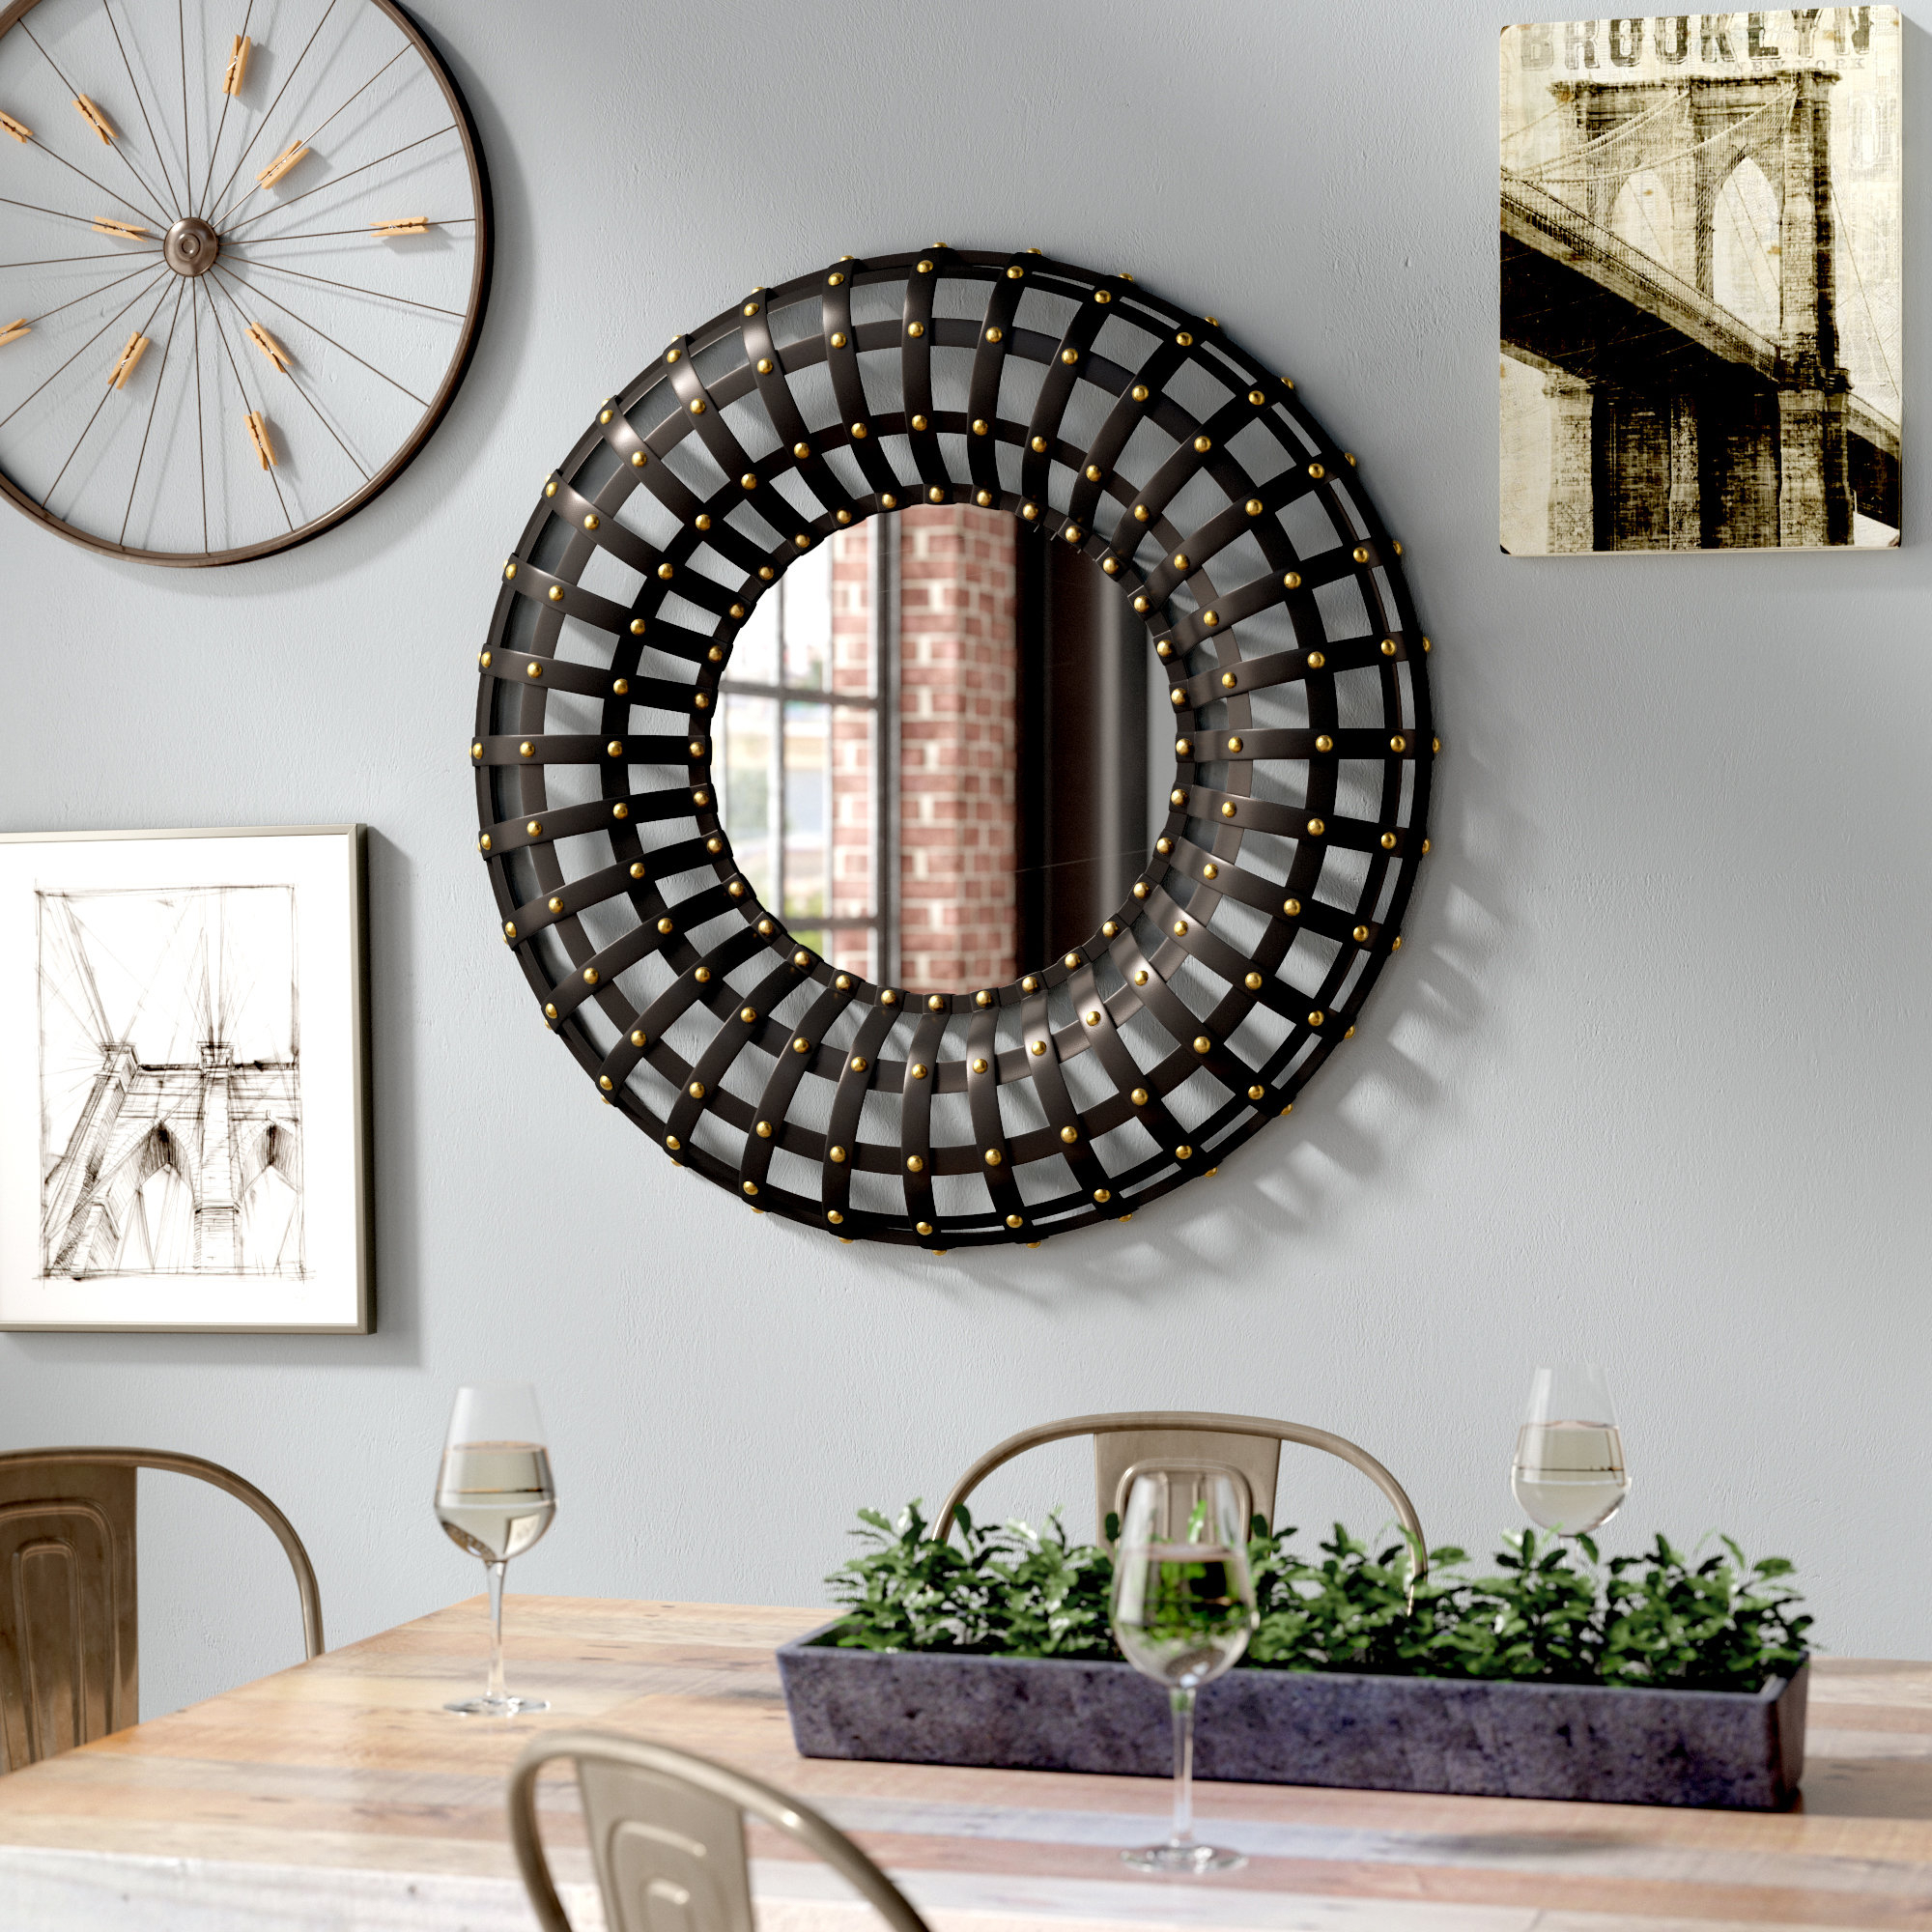 Grid Mirror | Wayfair For Grid Accent Mirrors (Image 7 of 20)